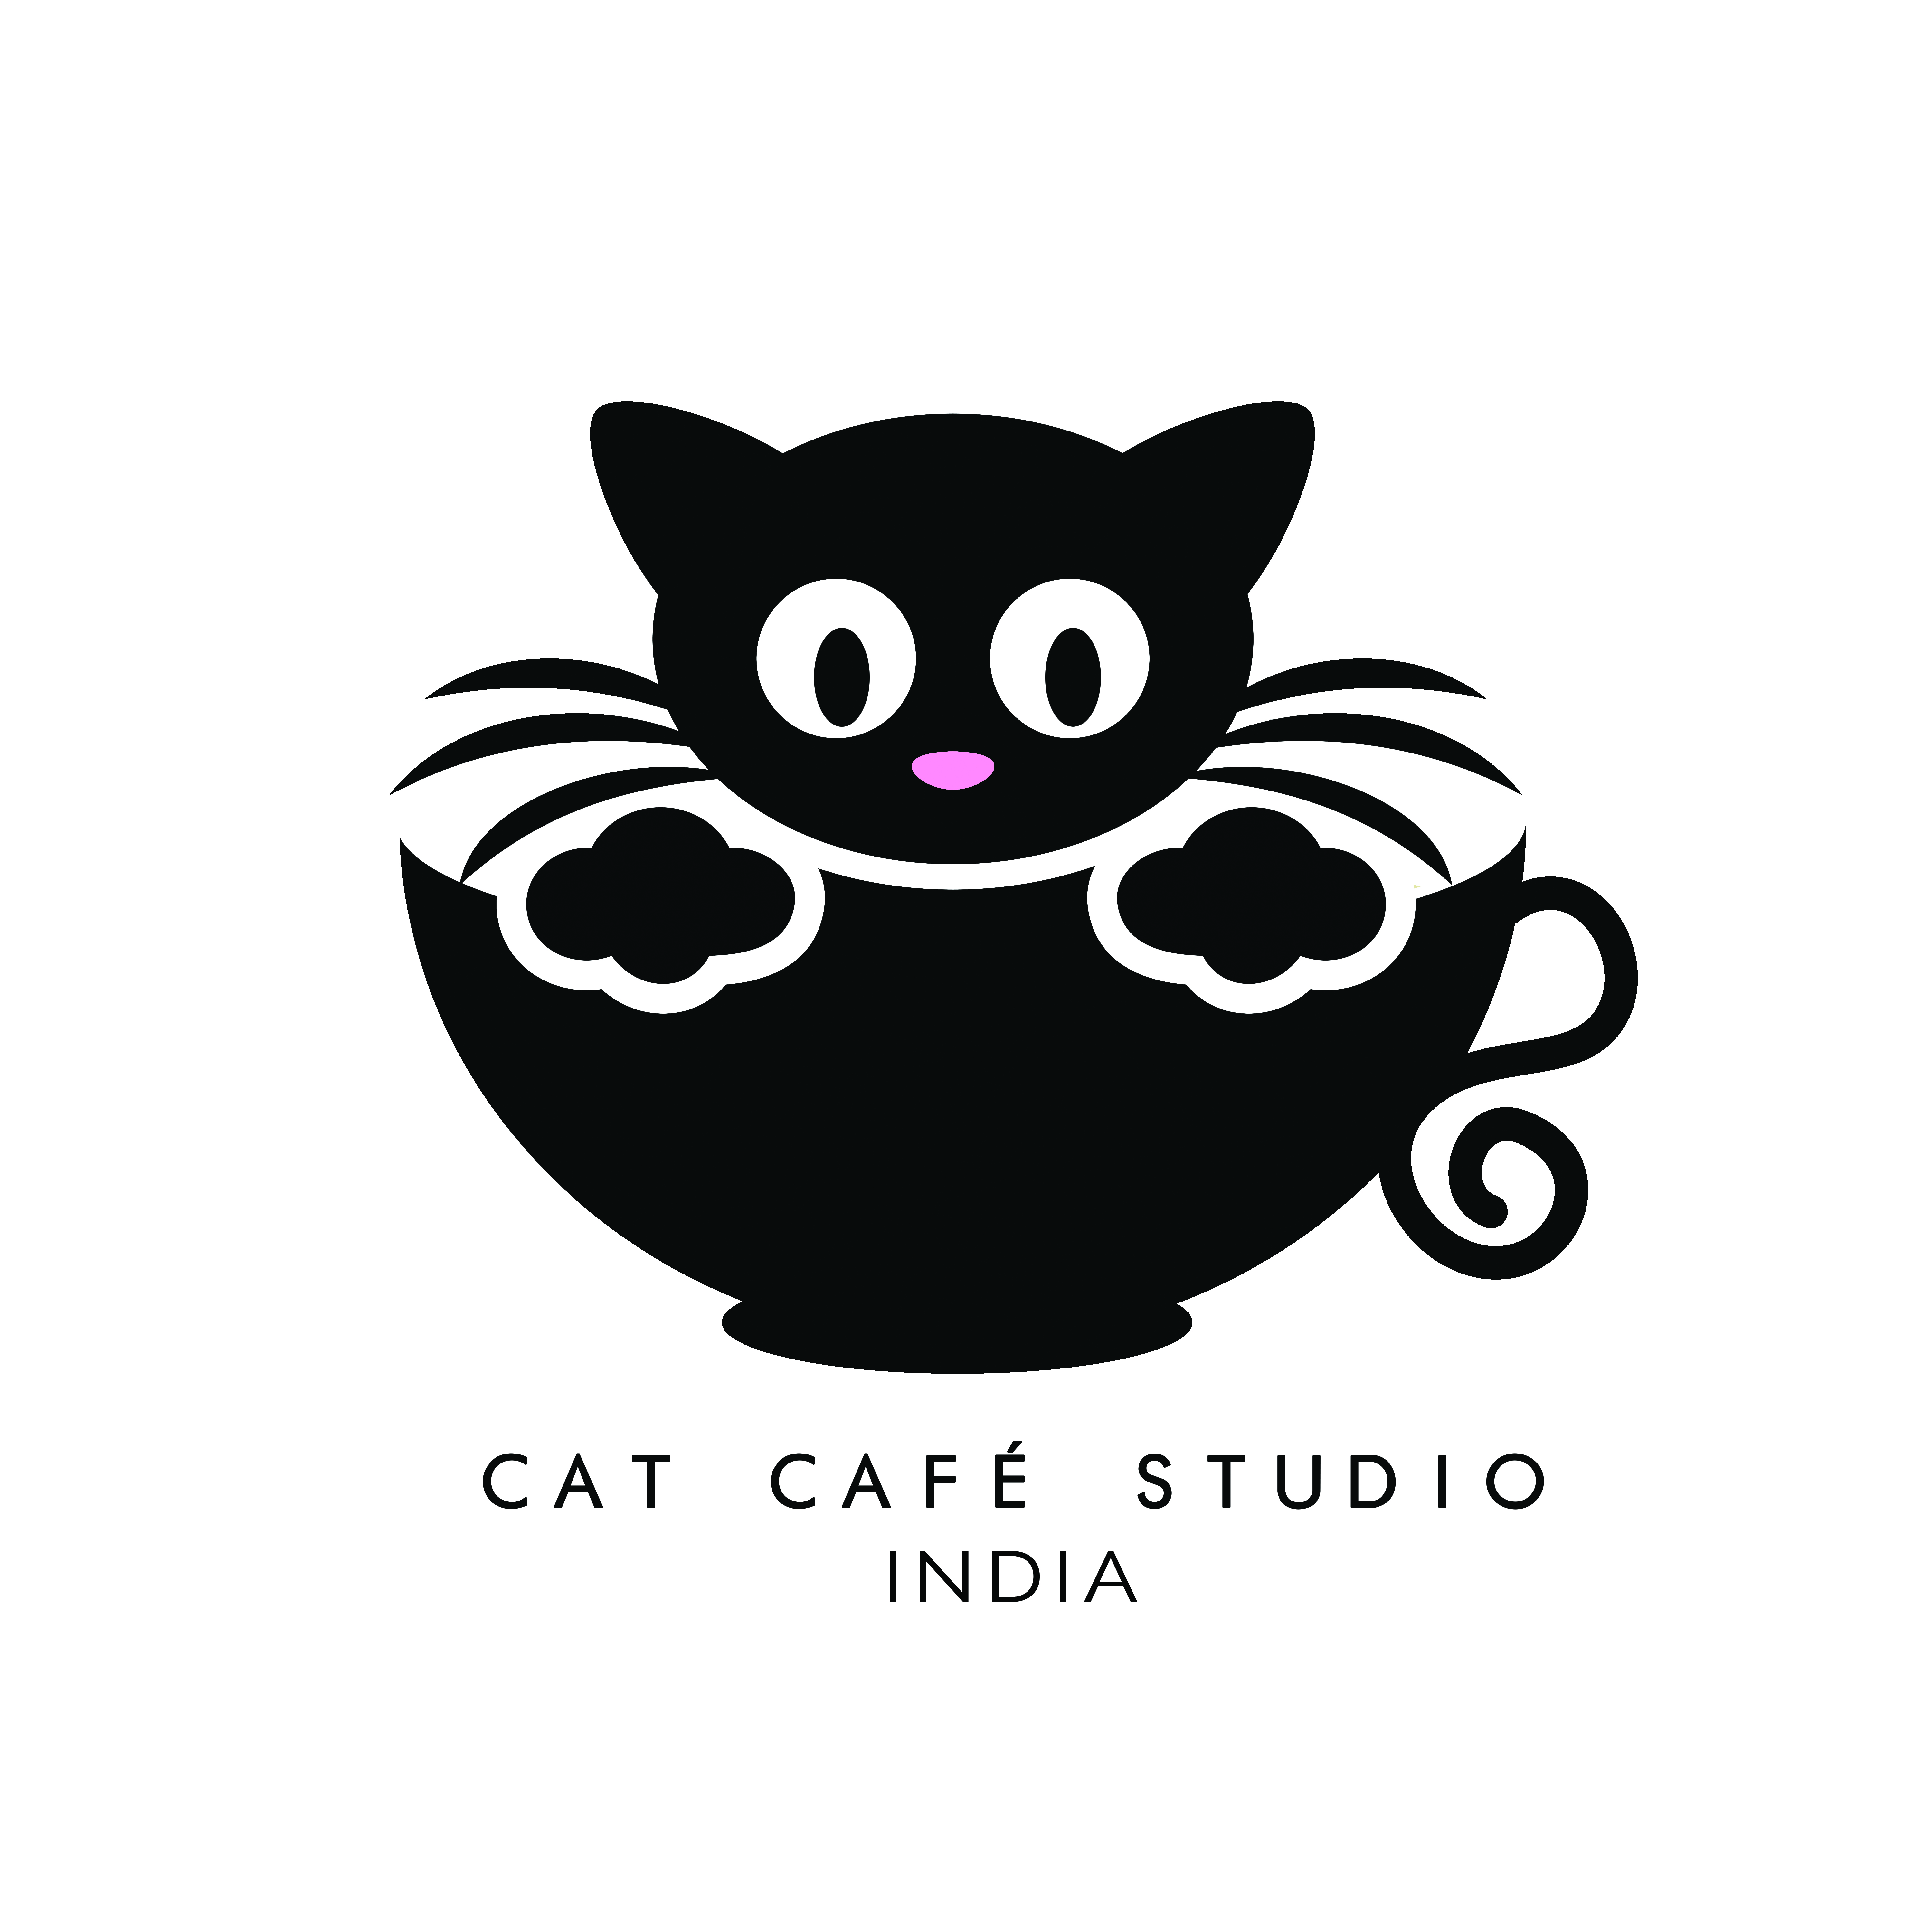 Cat Cafe Studio